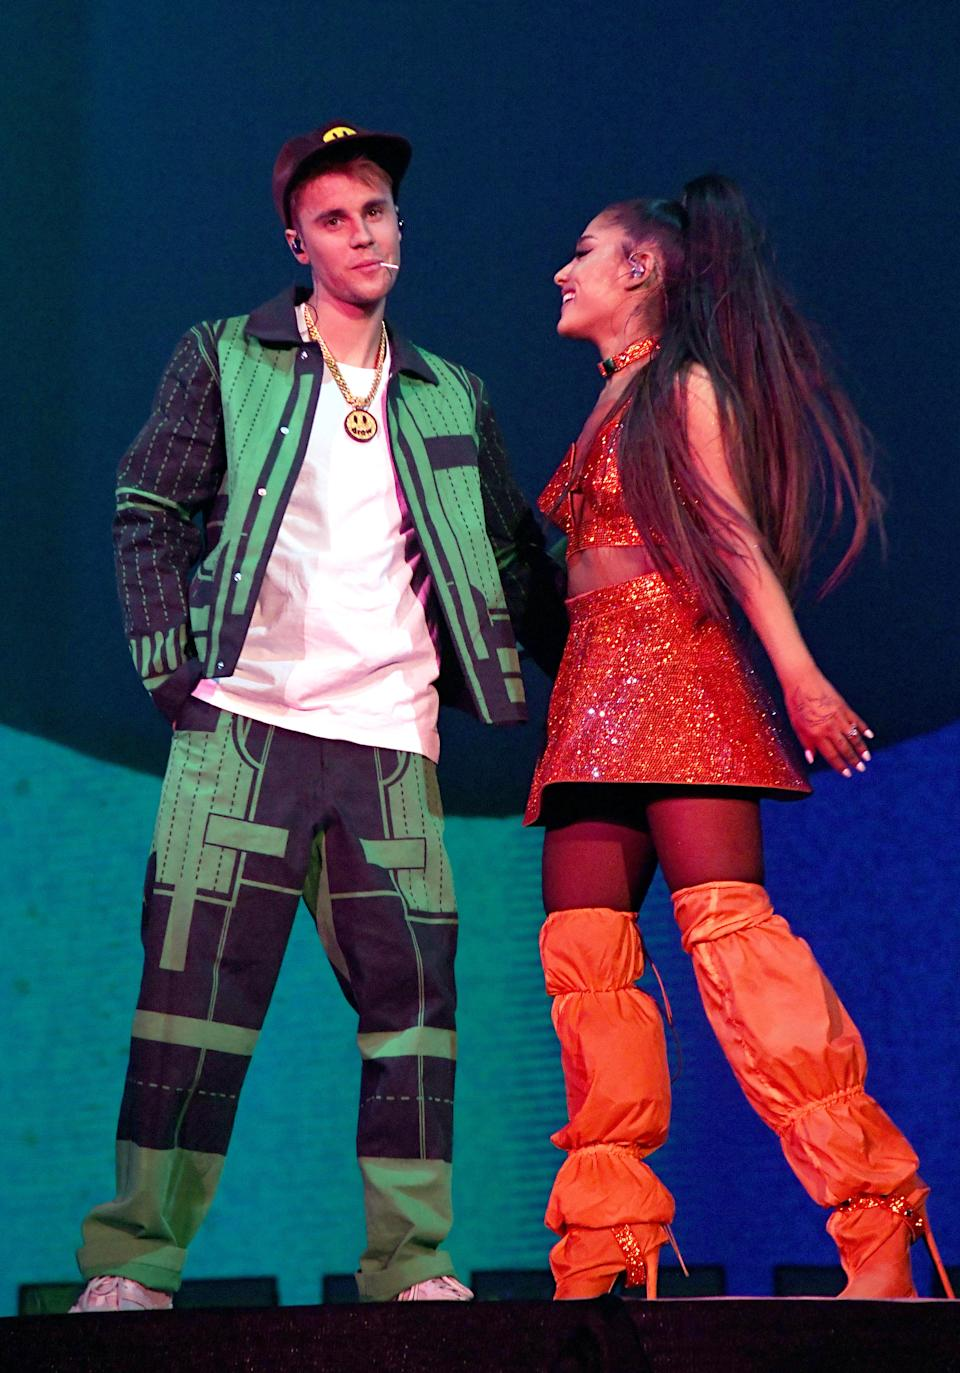 INDIO, CALIFORNIA – APRIL 21: Justin Bieber (L) performs with Ariana Grande at Coachella Stage during the 2019 Coachella Valley Music And Arts Festival on April 21, 2019 in Indio, California. (Photo by Kevin Mazur/Getty Images for AG)